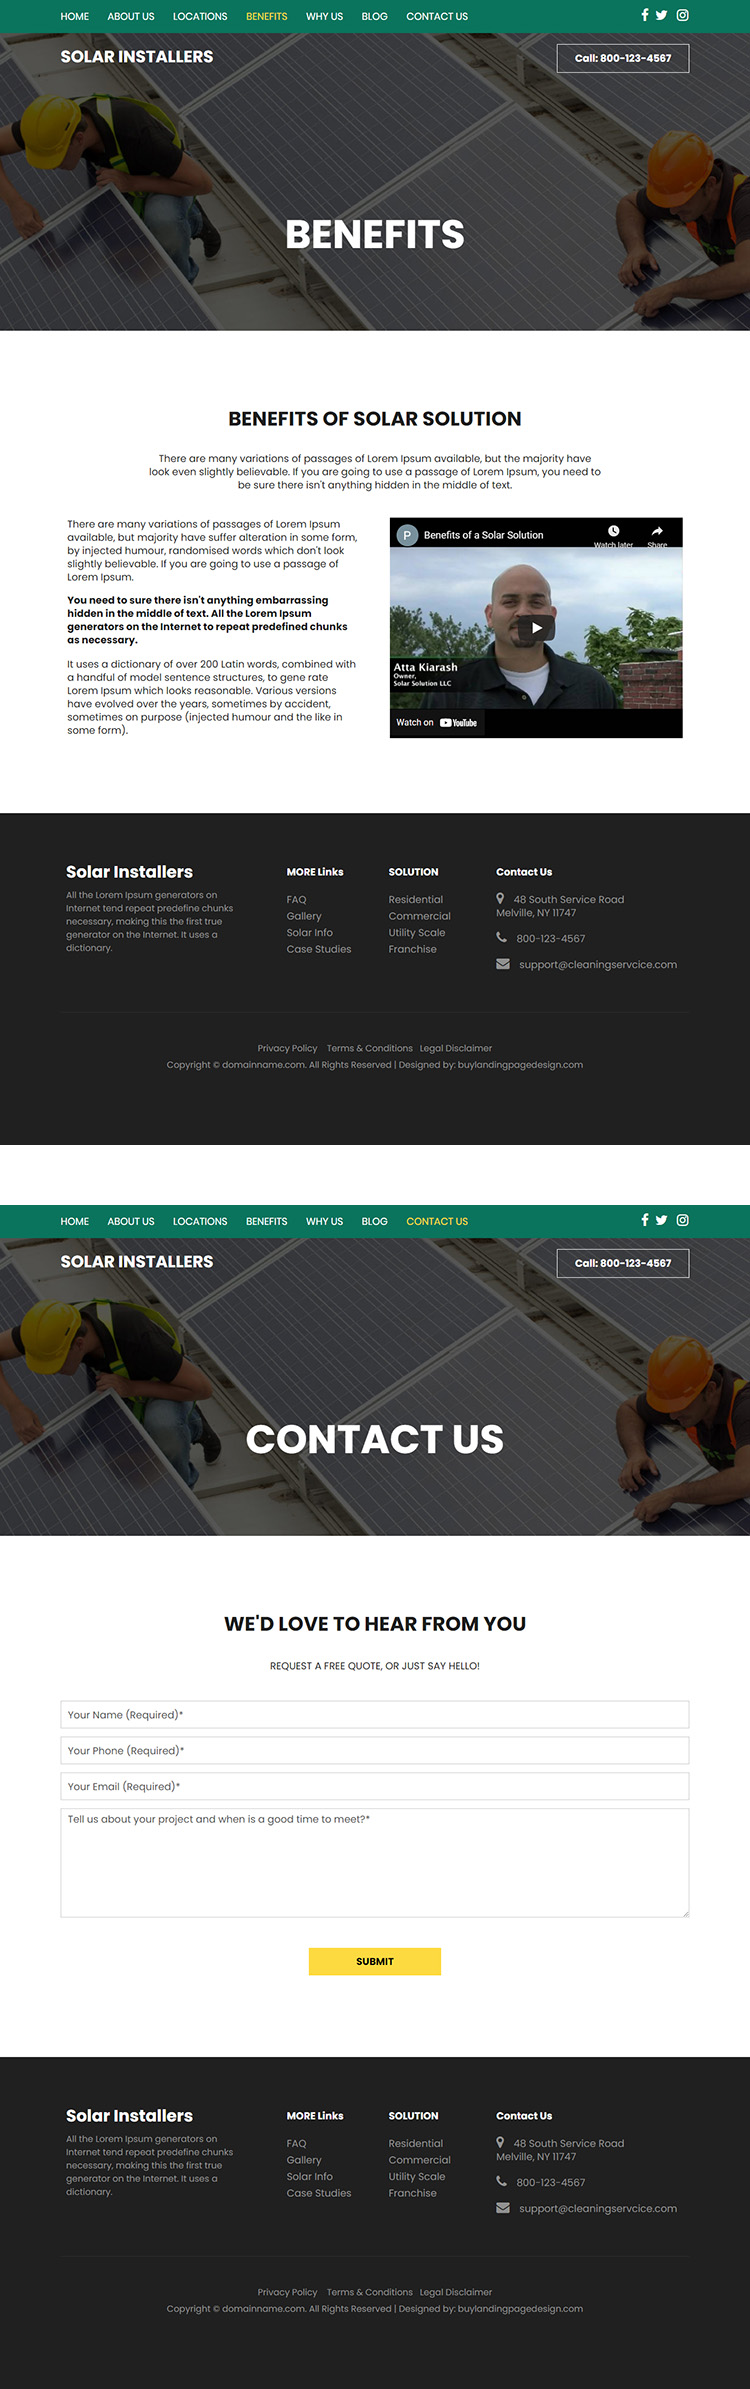 residential and commercial solar solutions website design